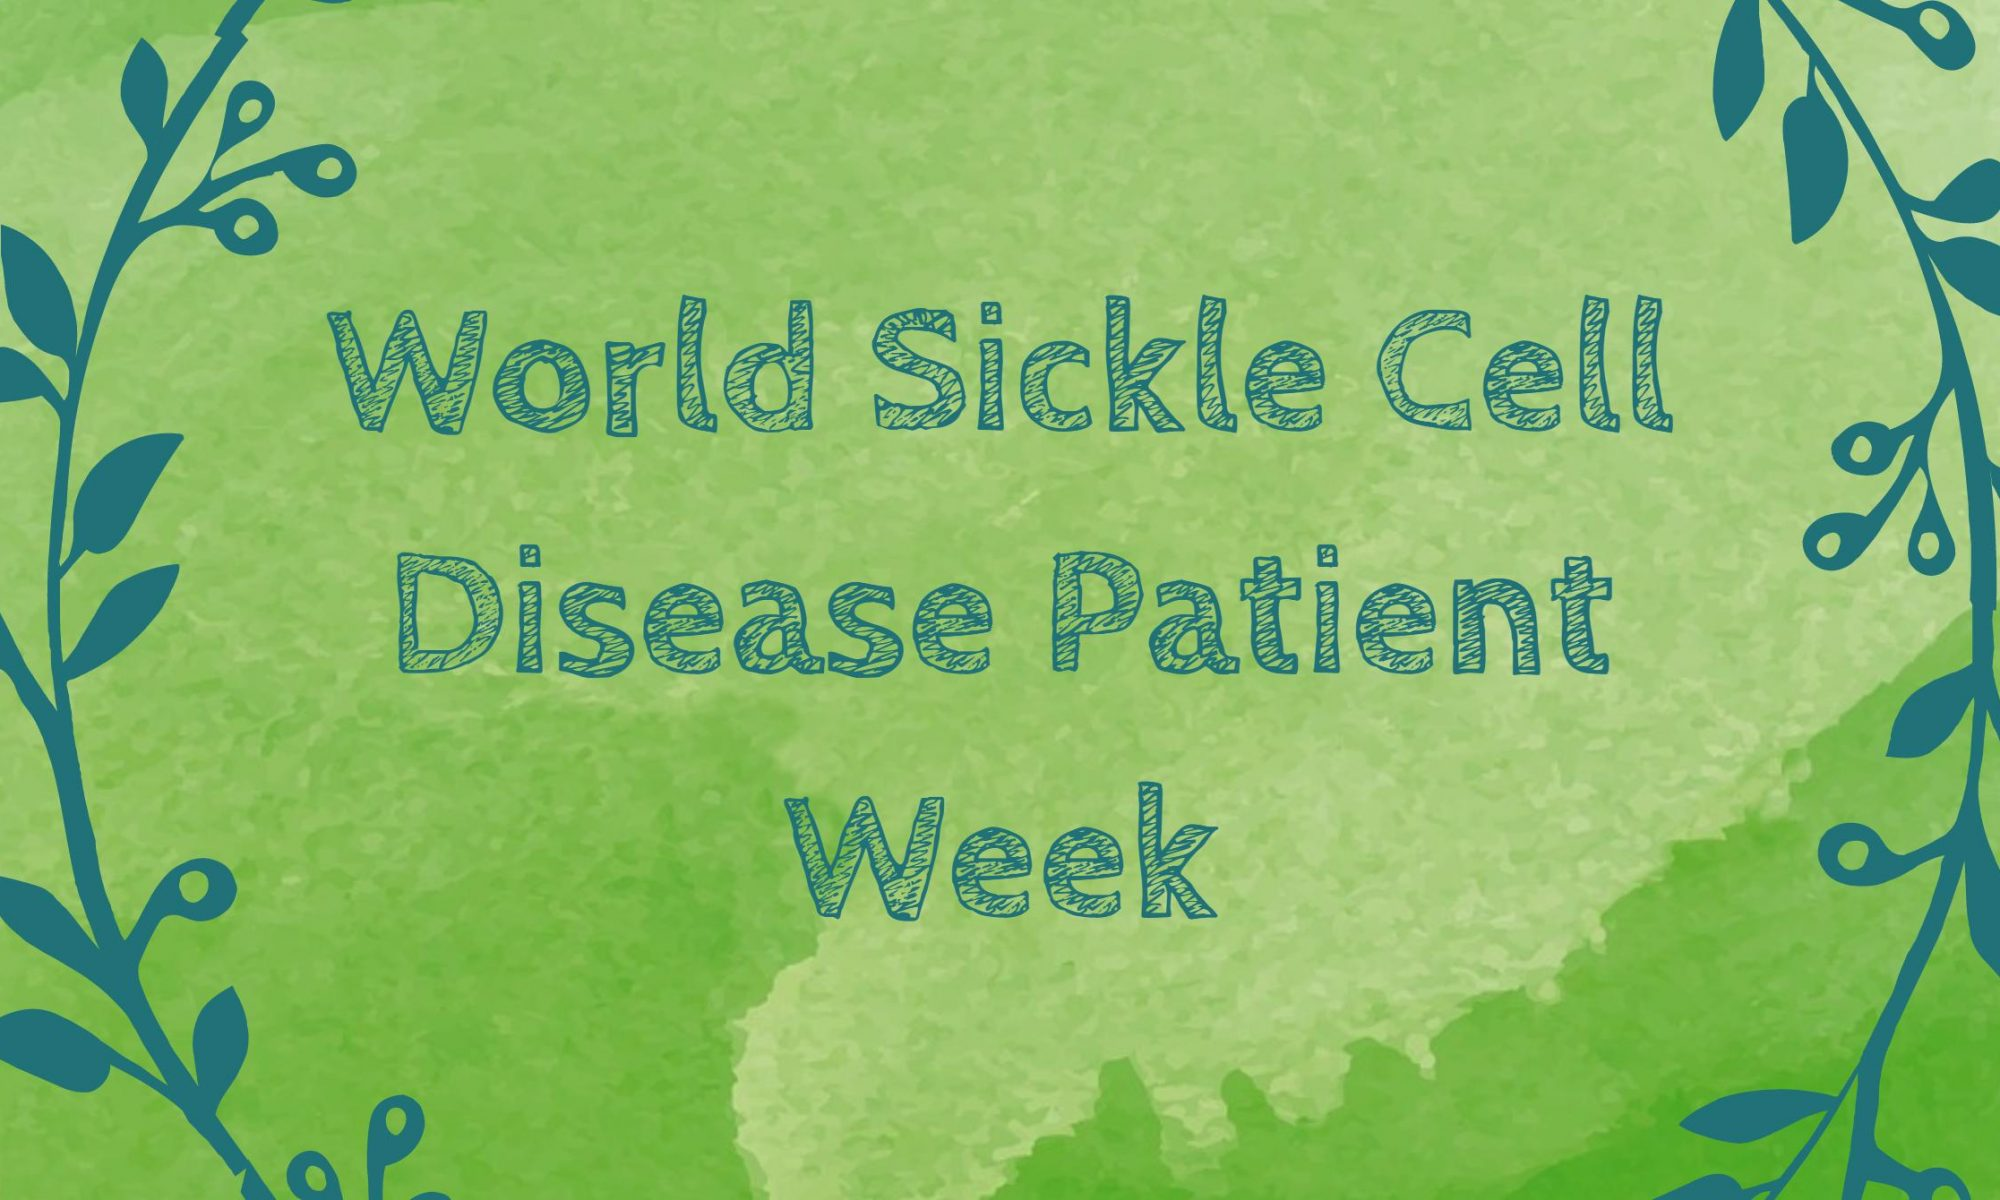 World Sickle Cell Disease Patient Week